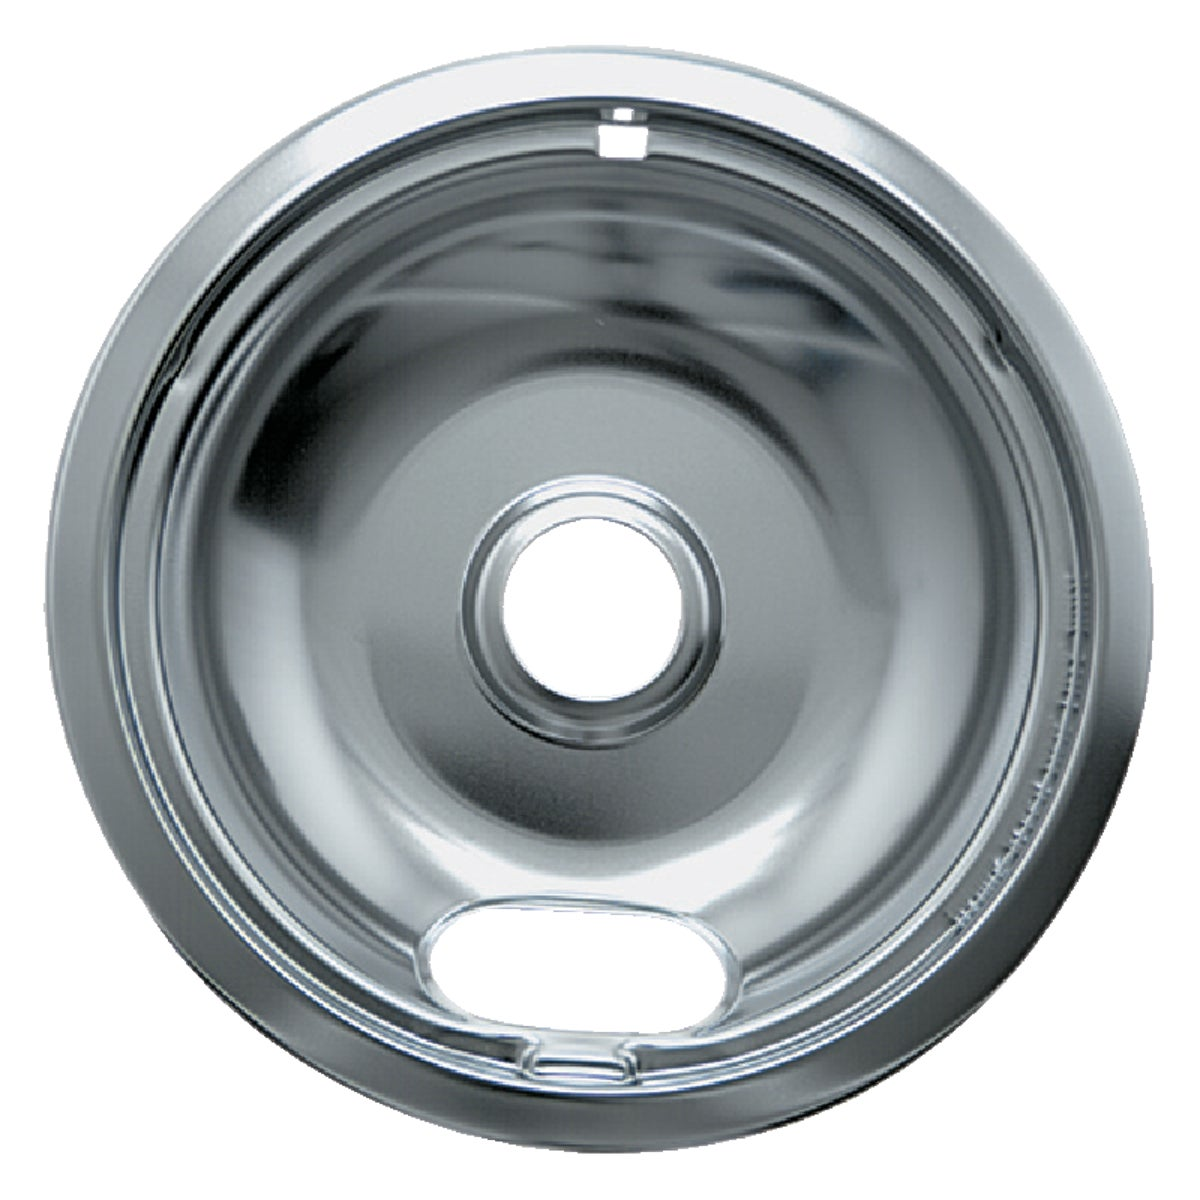 "8"" RANGE DRIP PAN - 102AM by Range Kleen Mfg Inc"